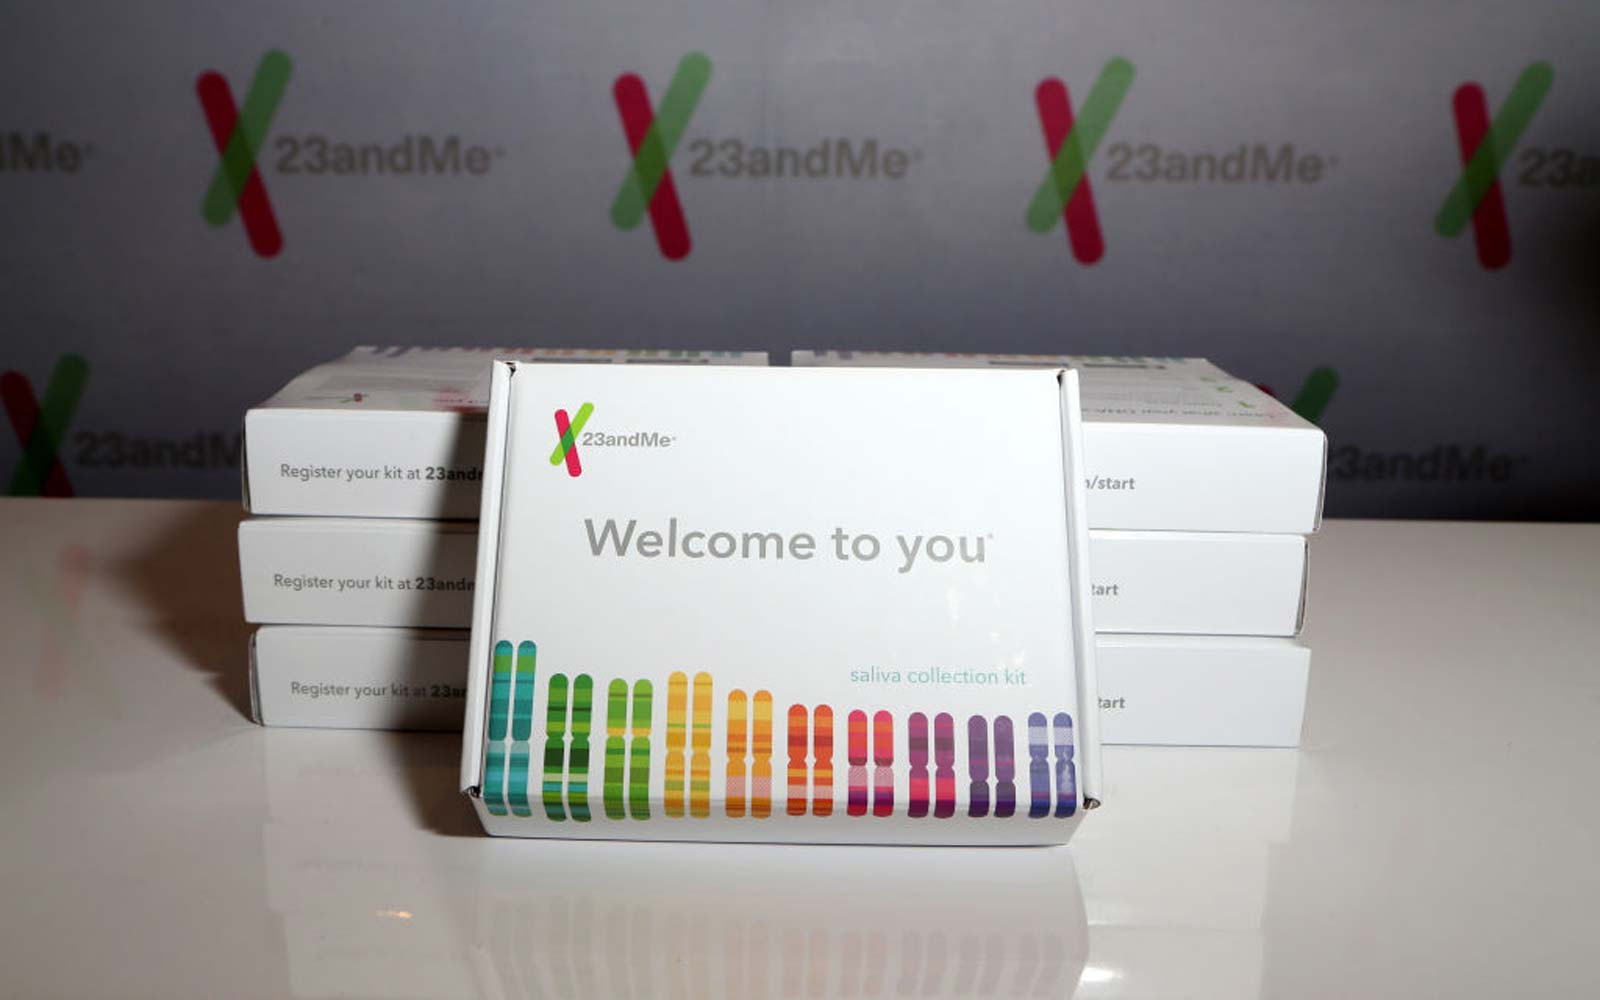 23andMe at the gift lounge during the 19th annual Latin GRAMMY Awards at MGM Grand Garden Arena